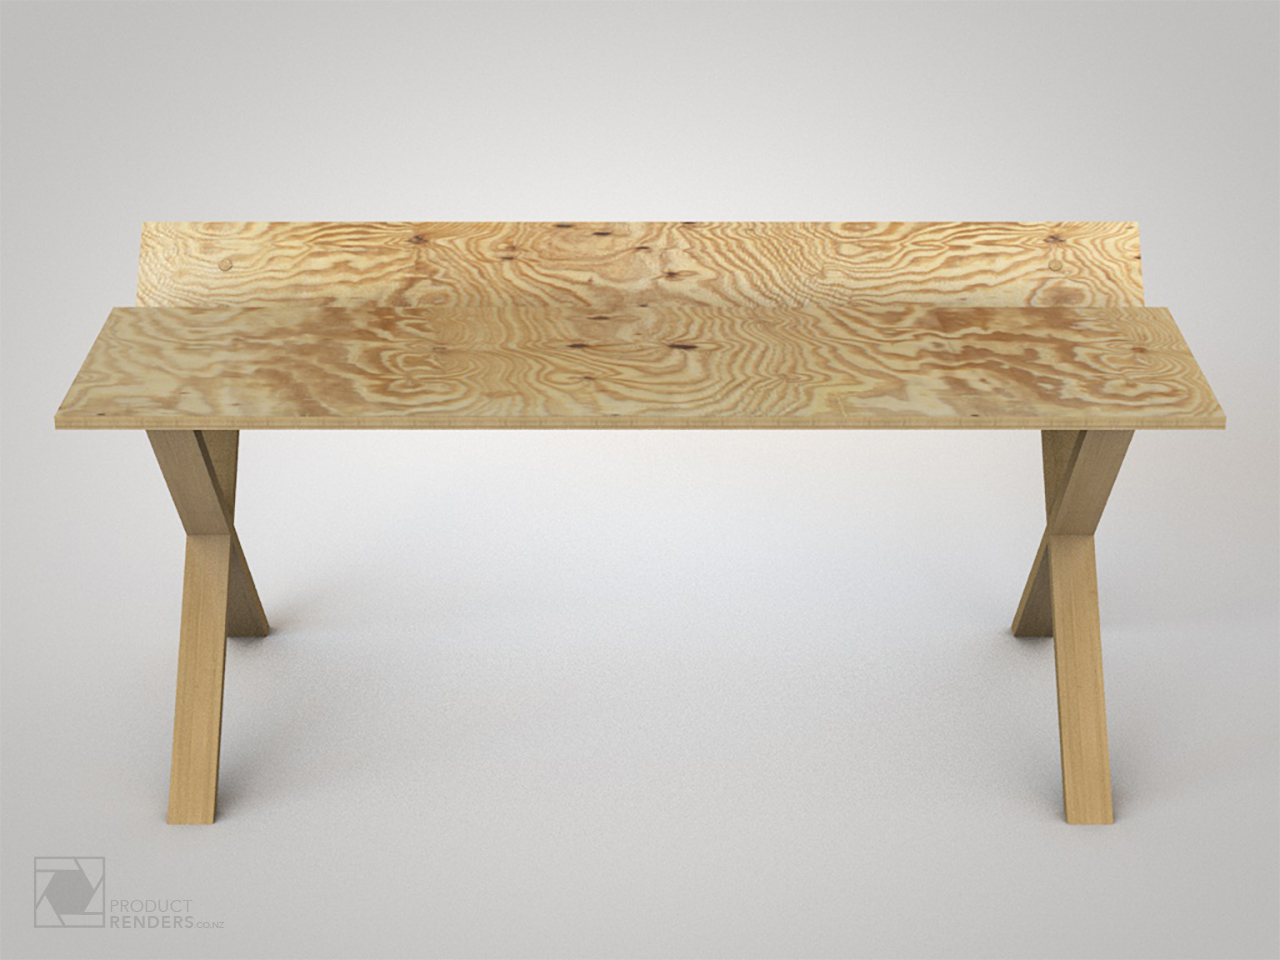 3D render of a concept desk